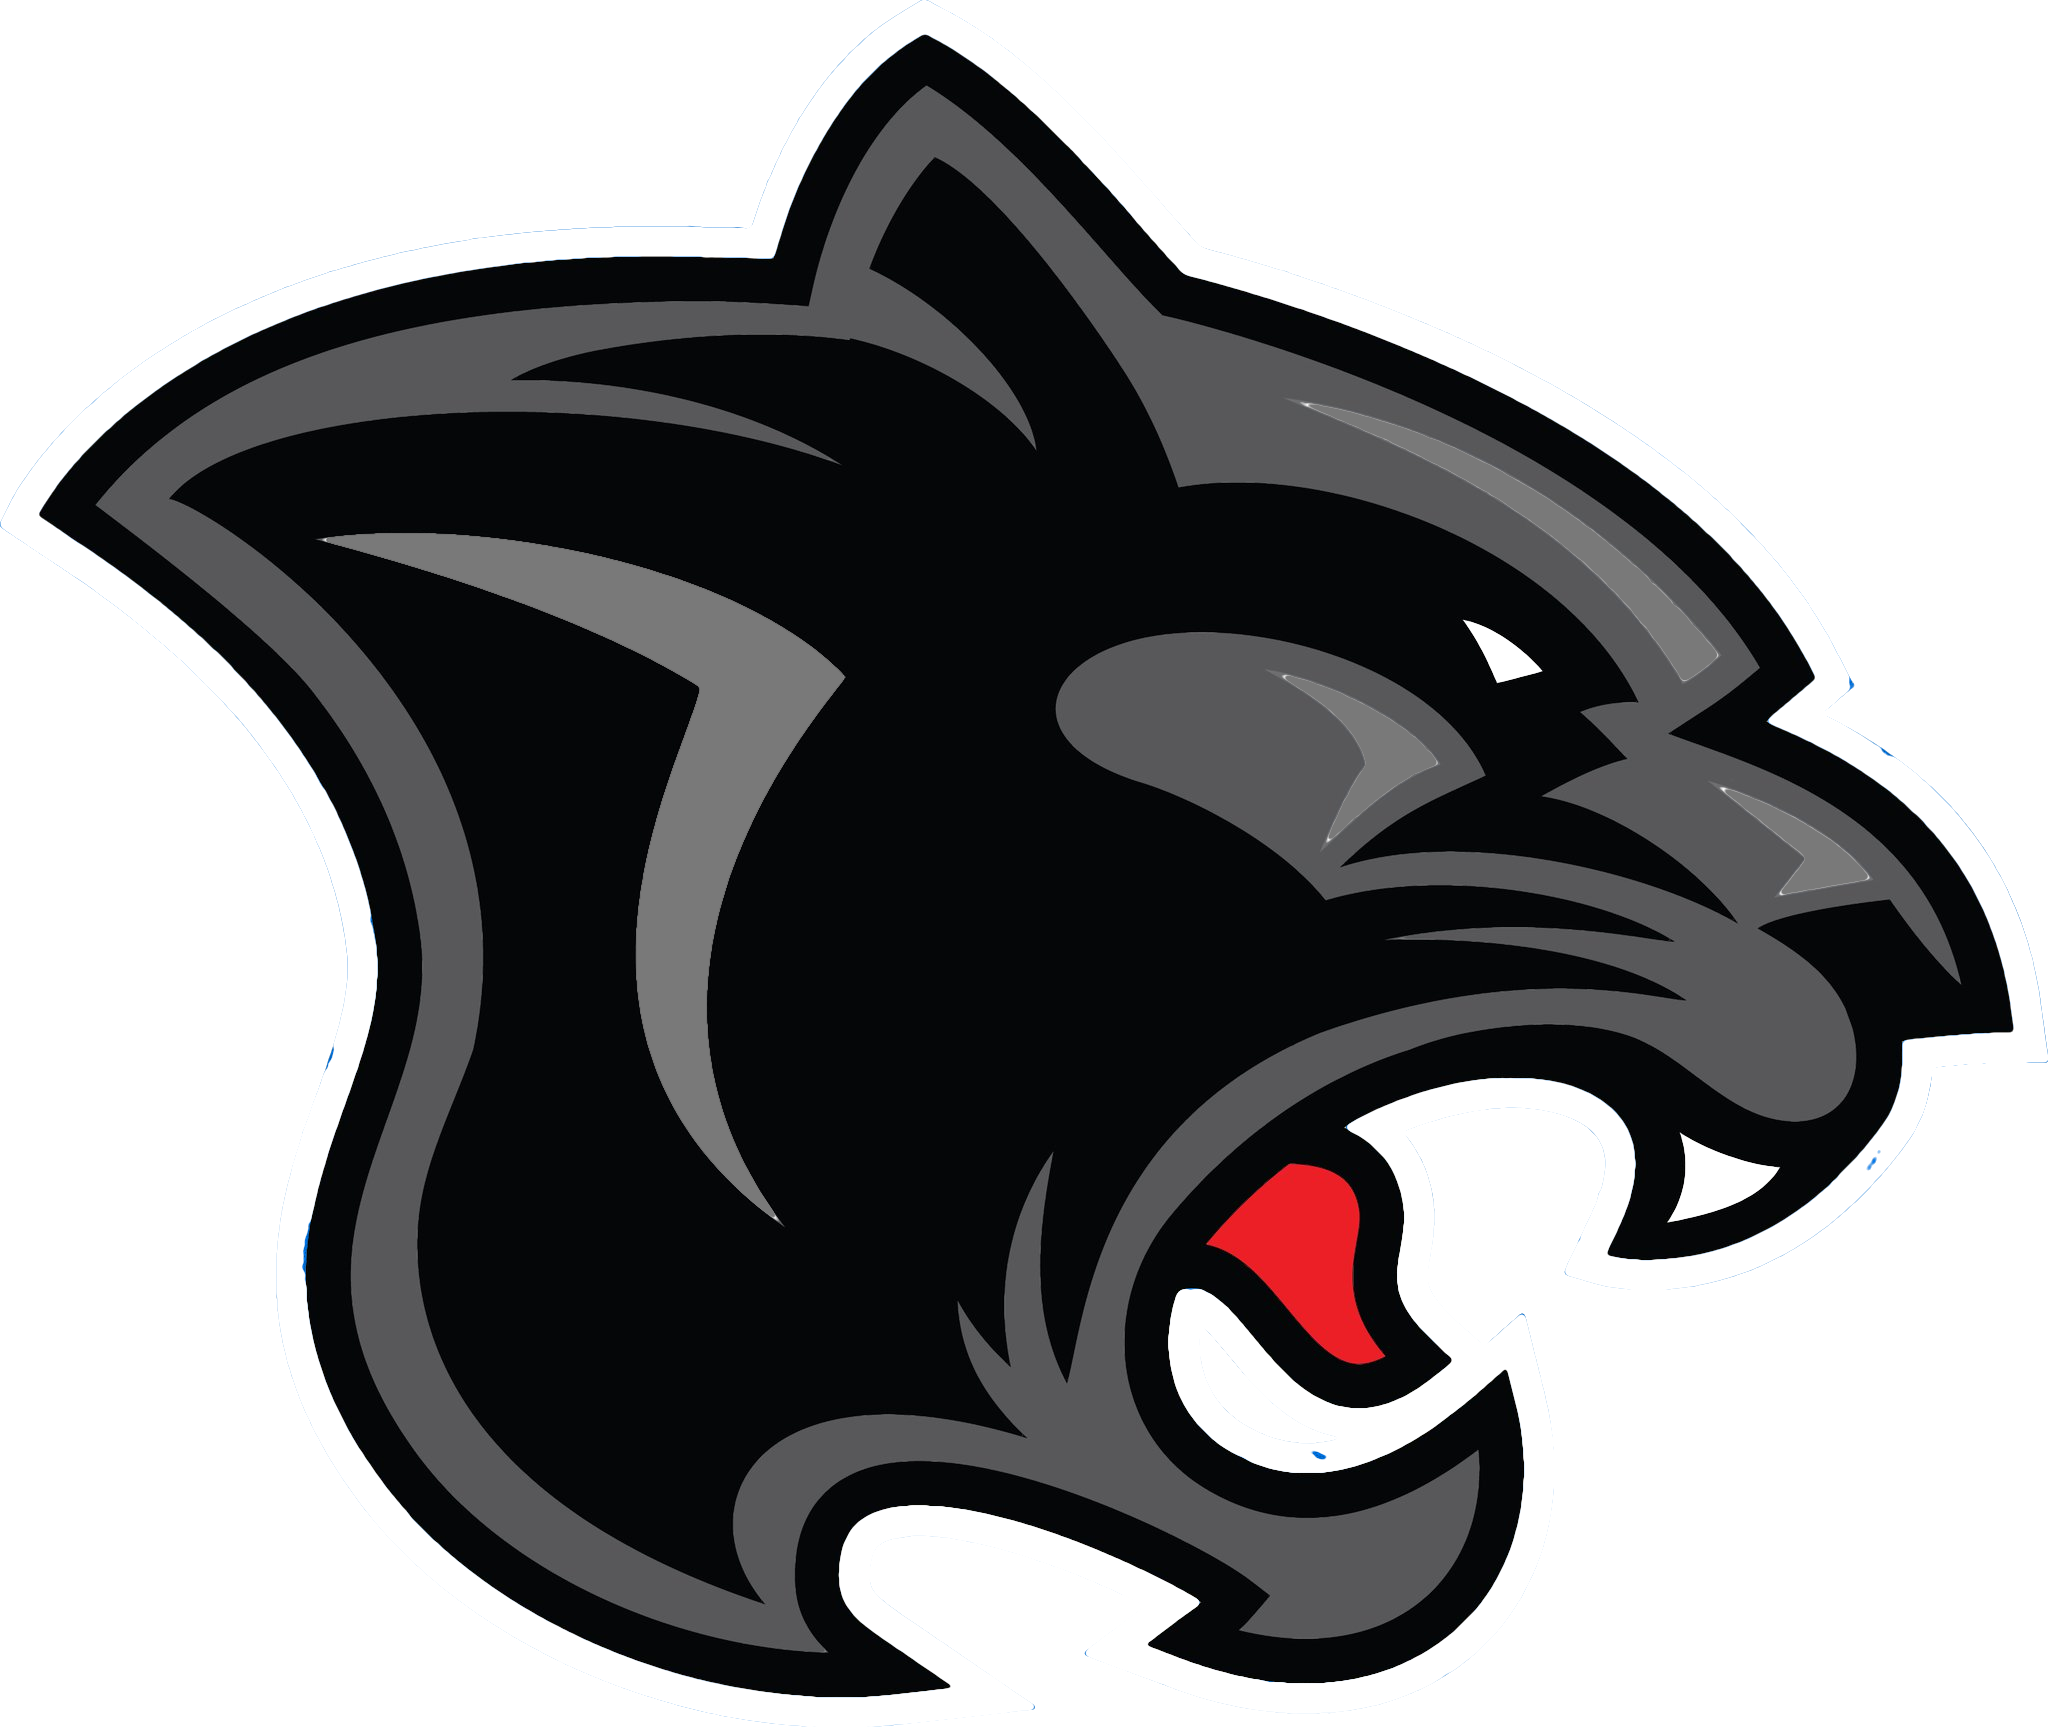 Black panther head png. Free transparent images download